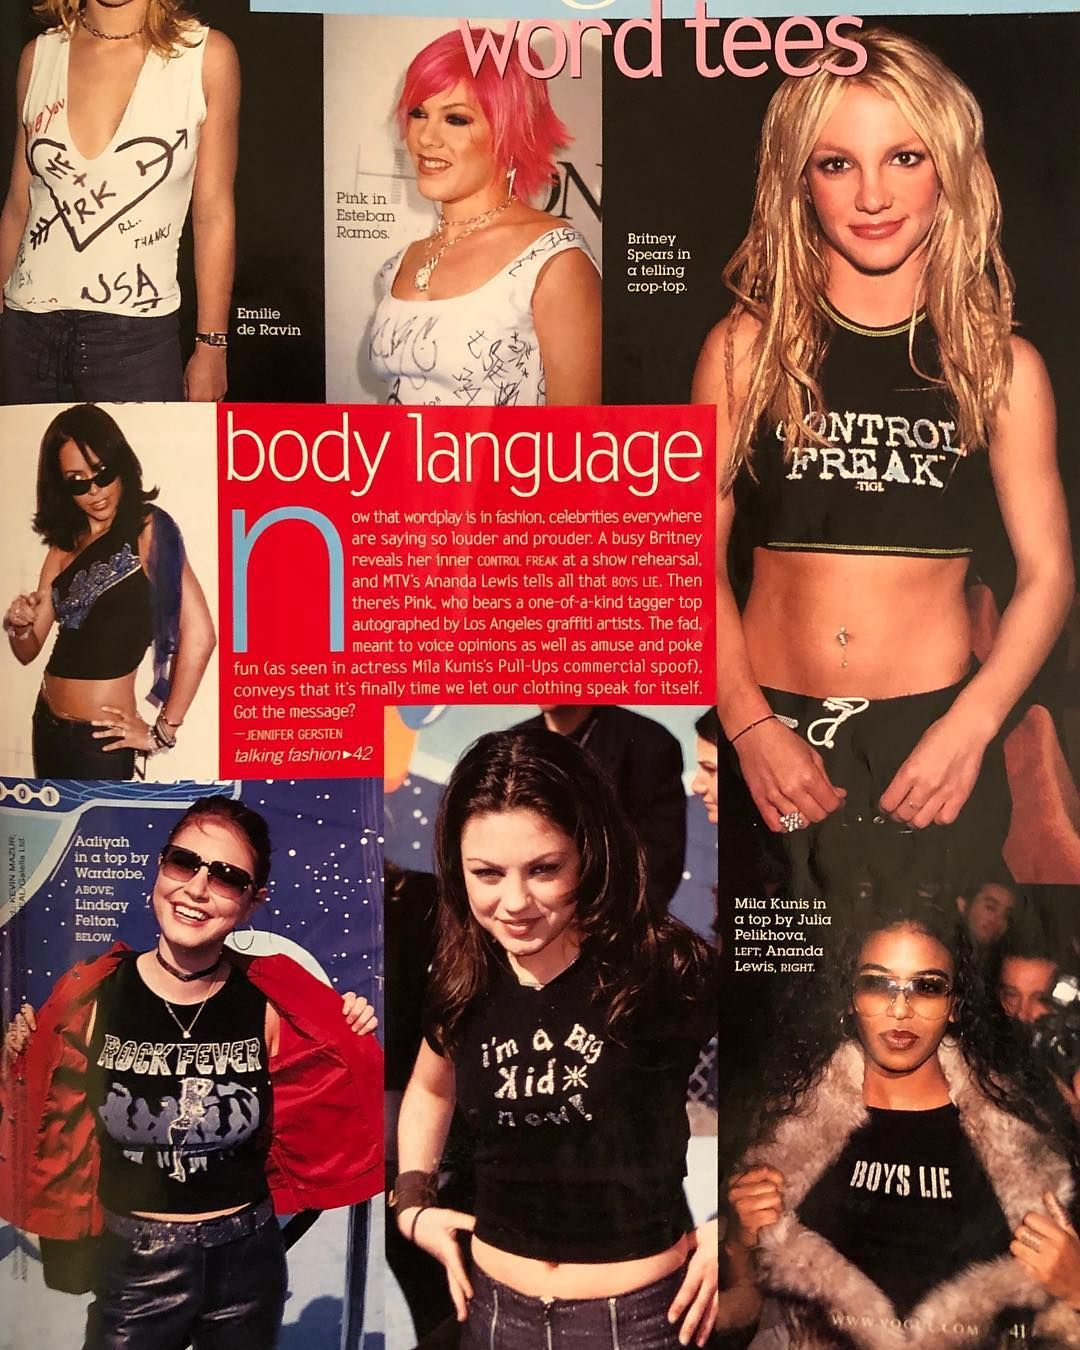 5 Trends That Were Totally Cool According to Teen Mags in the 2000s